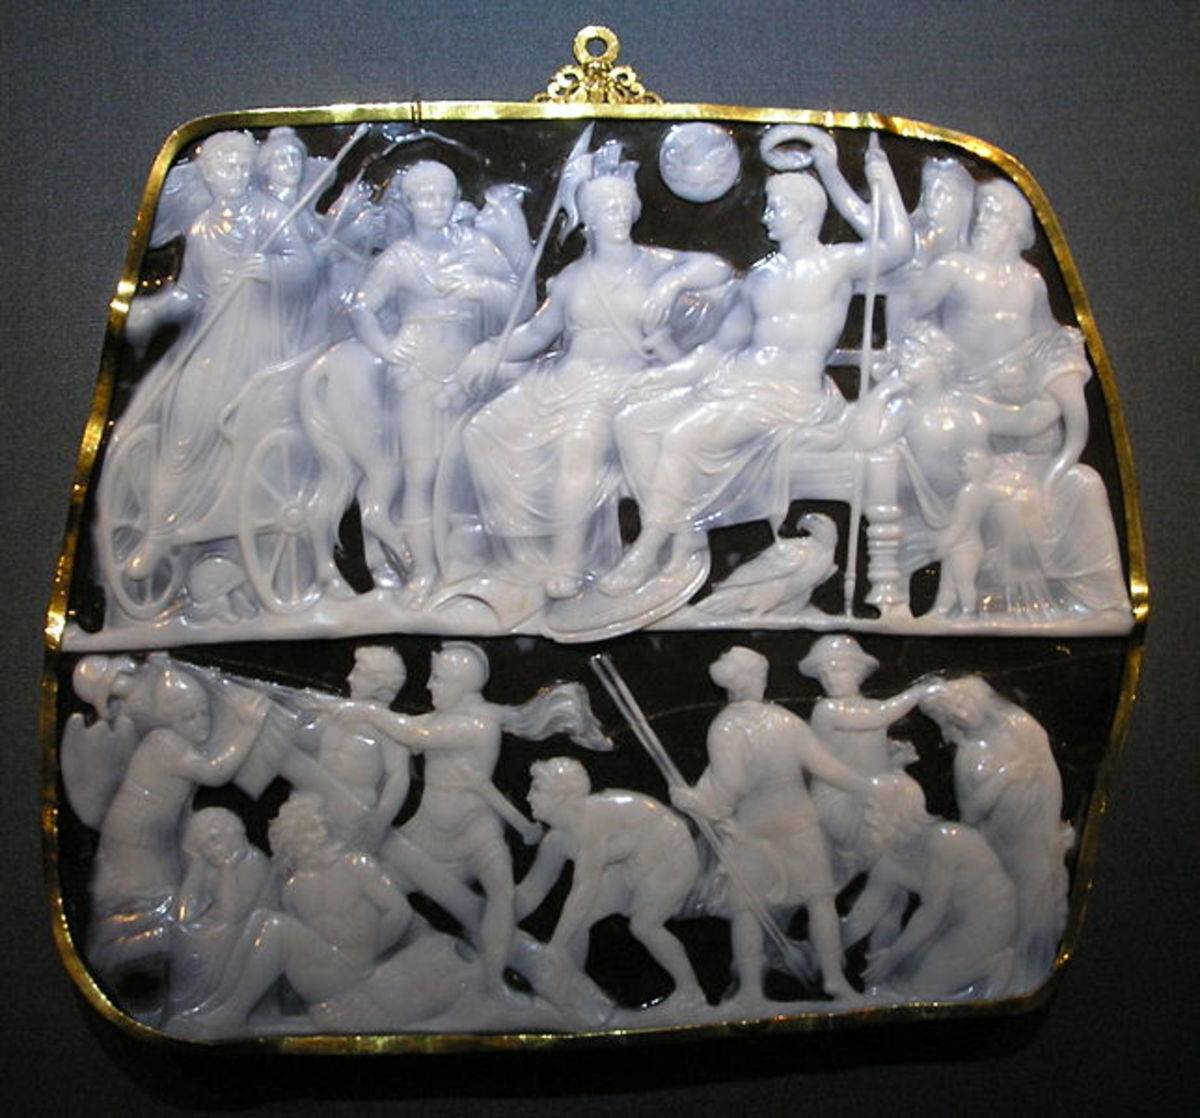 Gemma Augustea cameo, a depiction of Emperor Augustus surrounded by goddesses and allegories.  Collection of Greek and Roman Antiquities in the Kunsthistorisches Museum, Vienna. It made between 10C dan 20C. Size 19 x 23 cm.